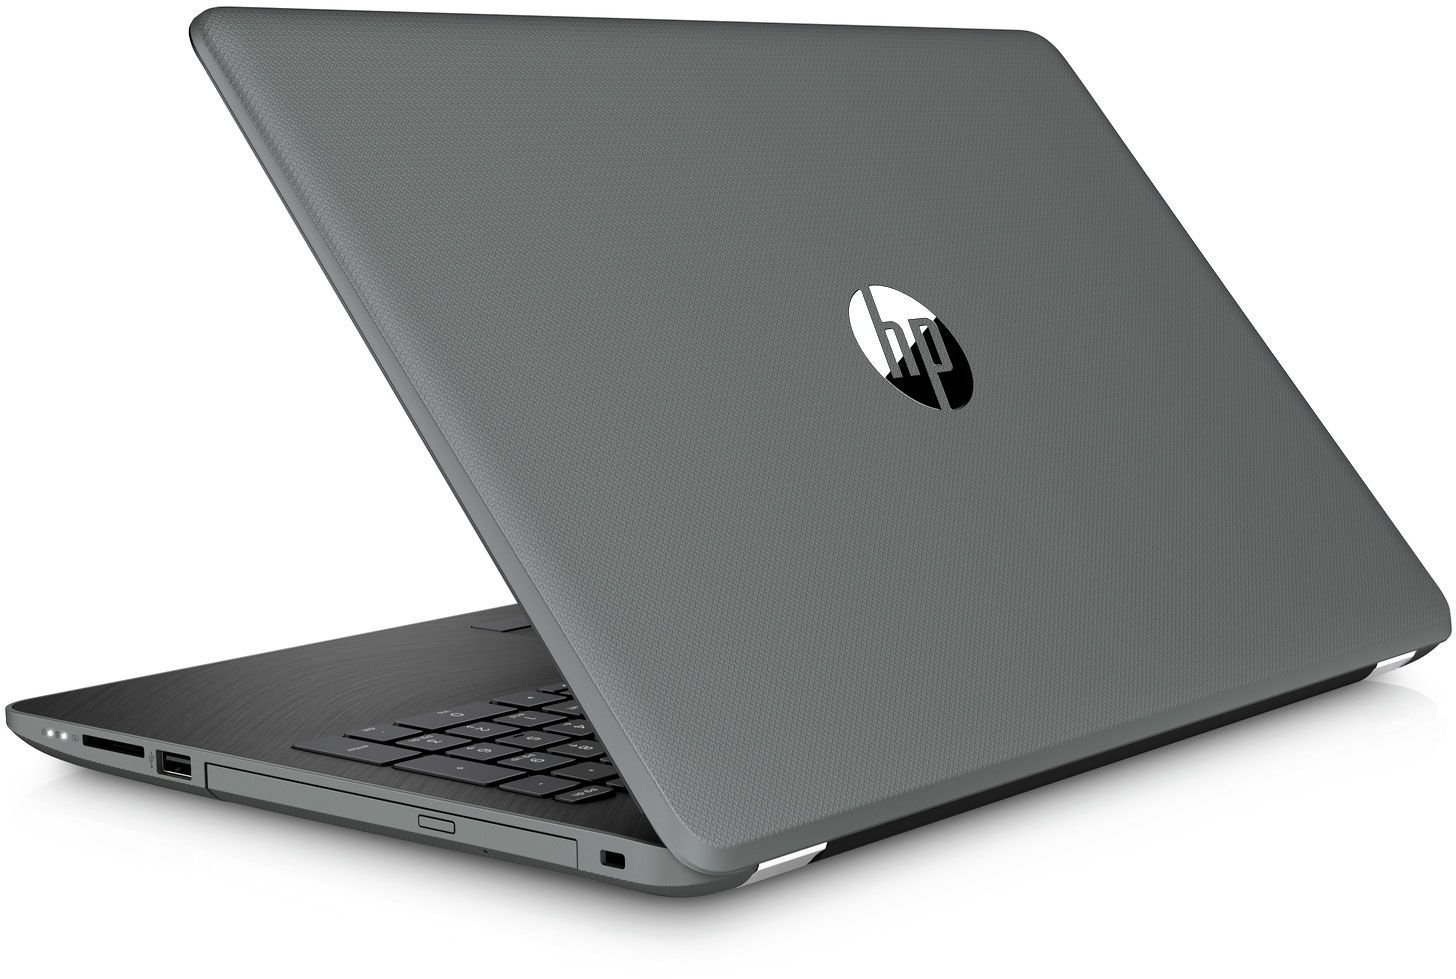 HP 15q-BU004TU 2017 15.6-inch Laptop Manual